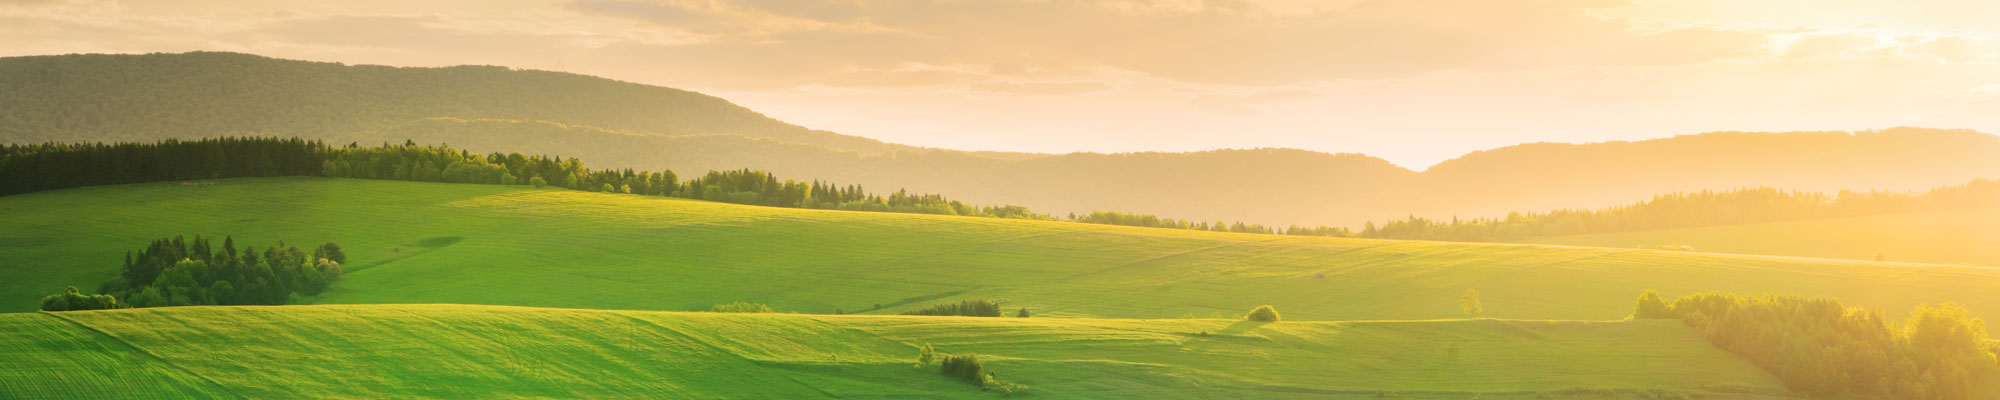 Grassy hill landscape at sunset